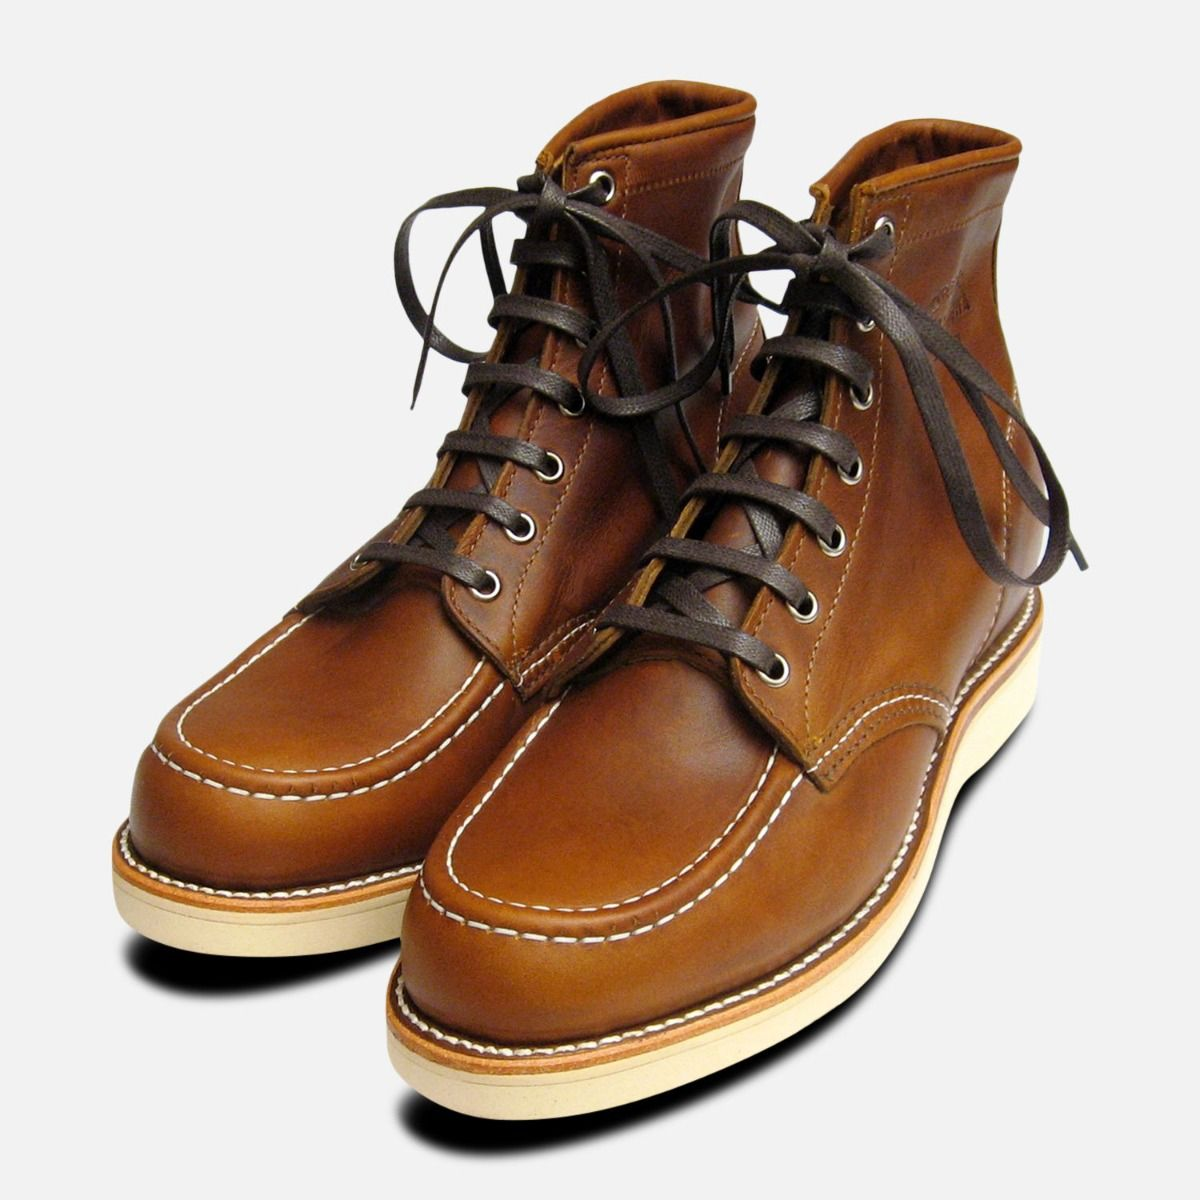 Chippewa Shoes Tan Renegade Leather